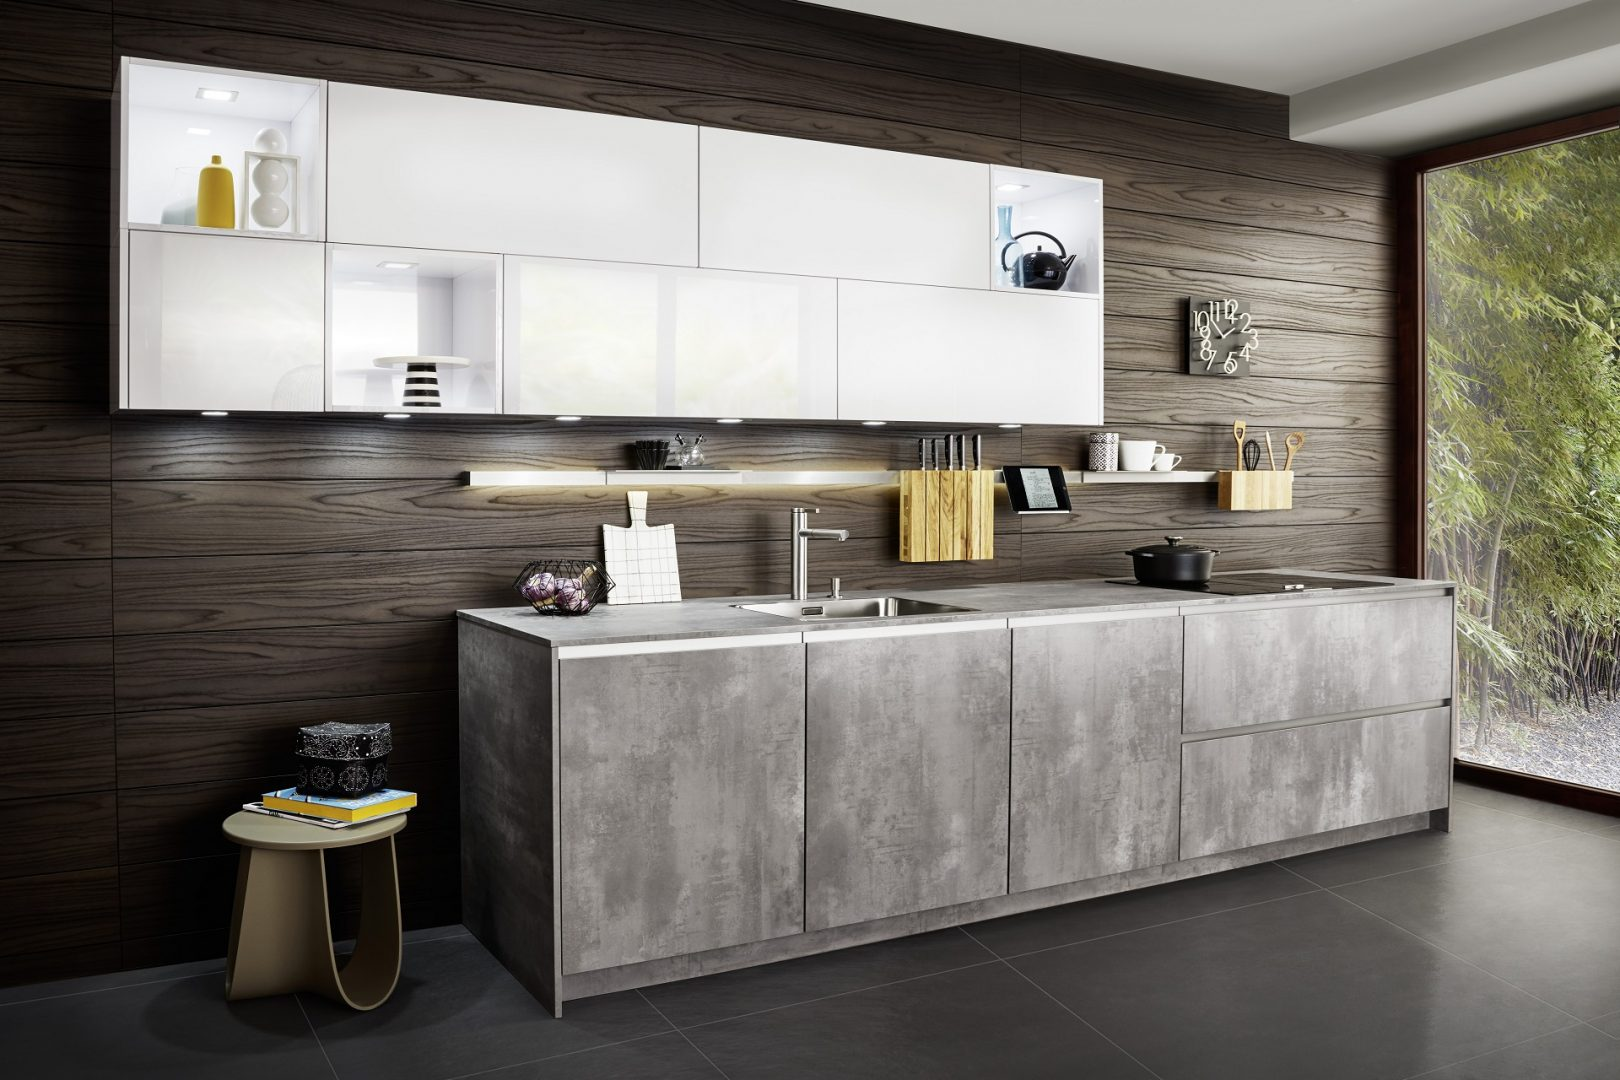 This kitchen by German supplier Leicht features two of their kitchen ranges. The mounted wall units are SIRIUS, a white high gloss lacquered door in finish '100 Arctic'. The second range is IKONO for the kitchen base units, a concrete effect laminate door in finish '202 Liton'.